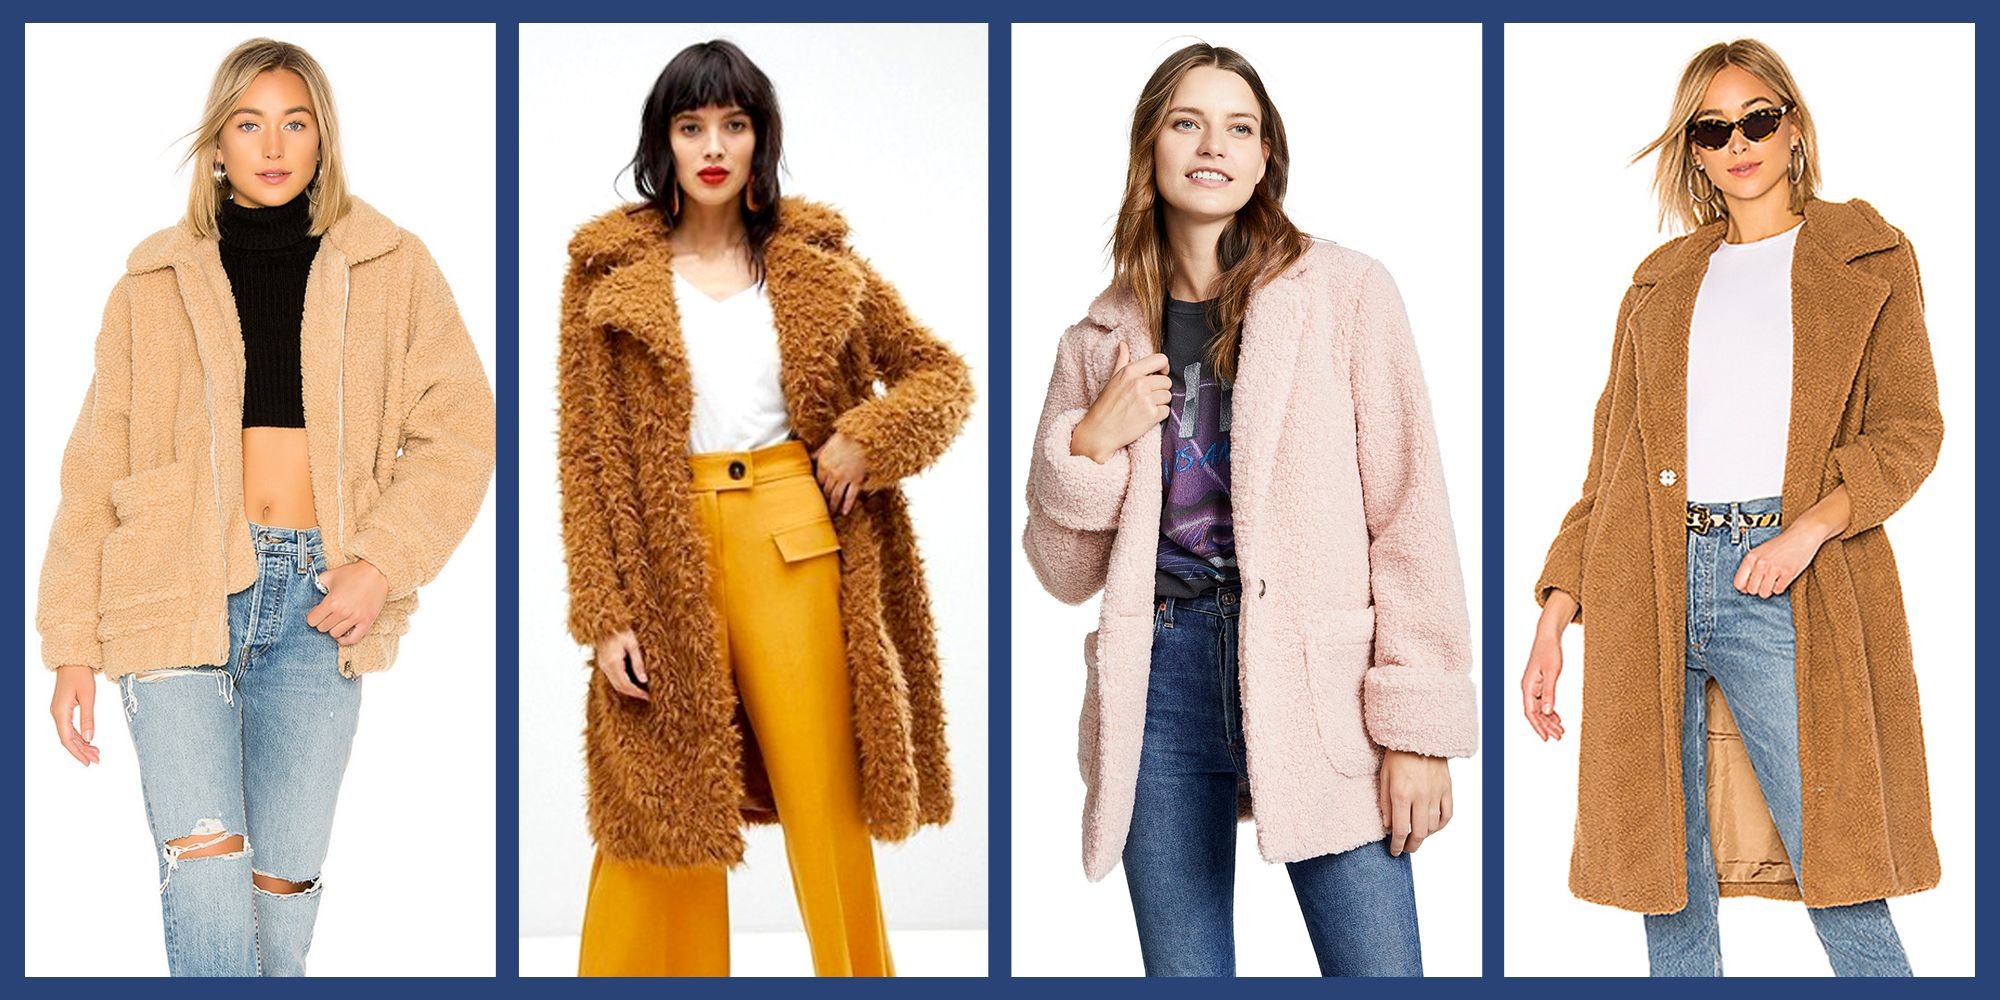 18 Best Teddy Bear Coats for Fall 2019 , Chic and Cozy Teddy